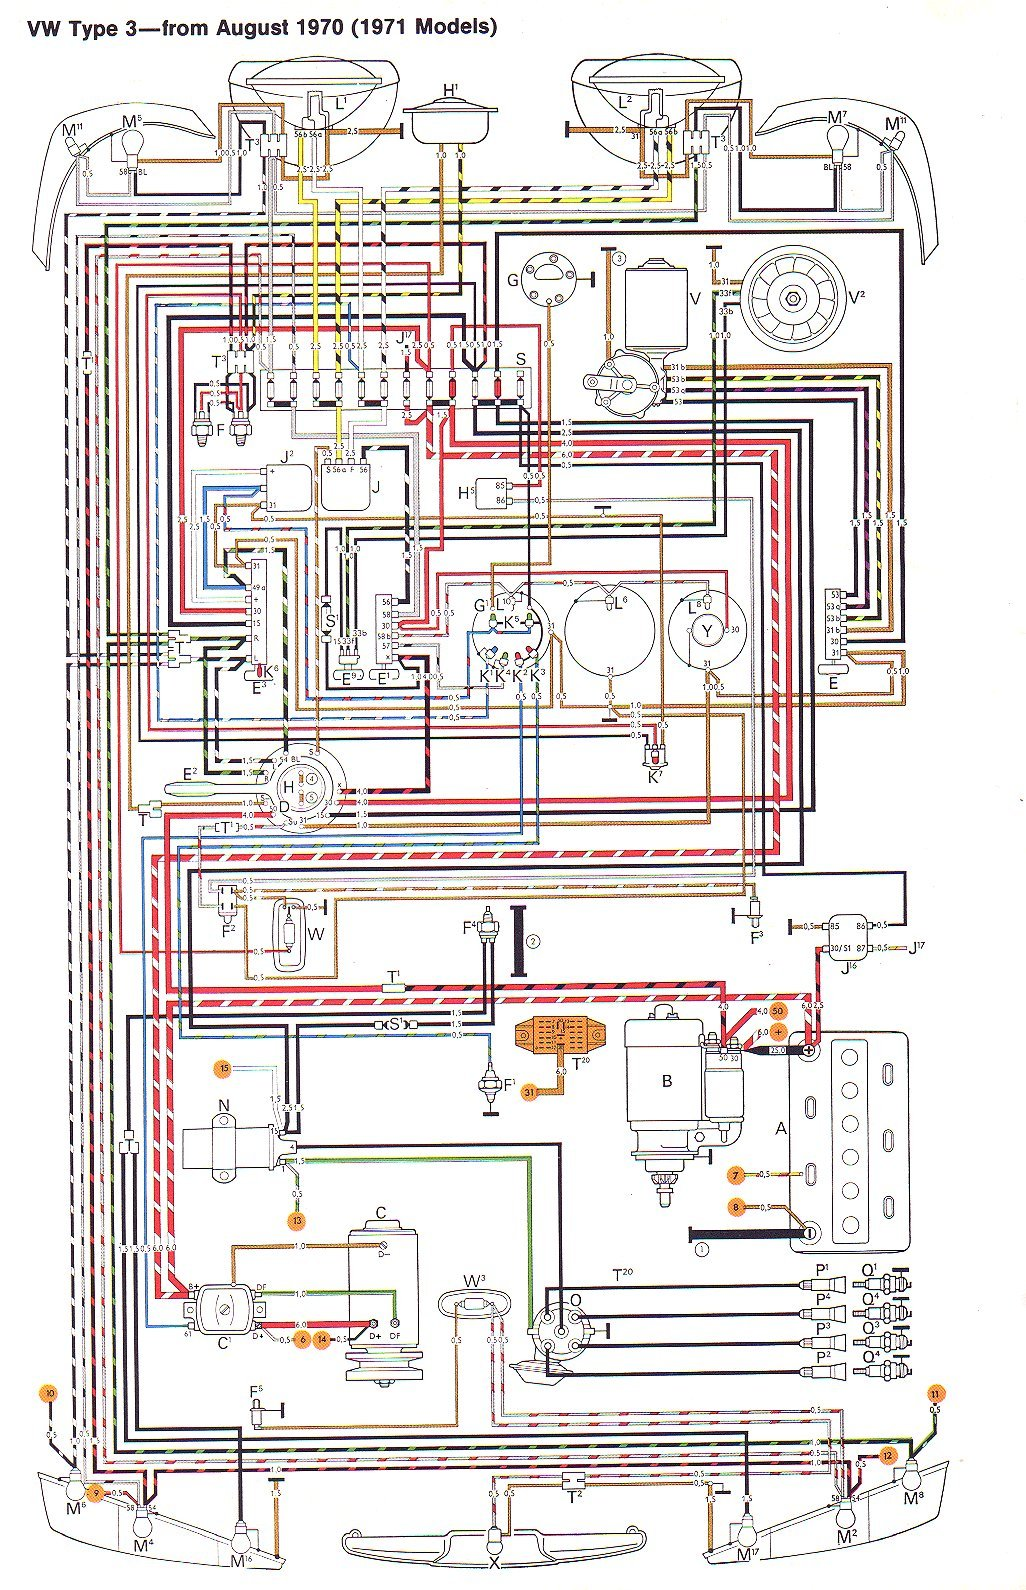 wire71t3 vw type 3 wiring diagrams vw squareback fuse box at fashall.co